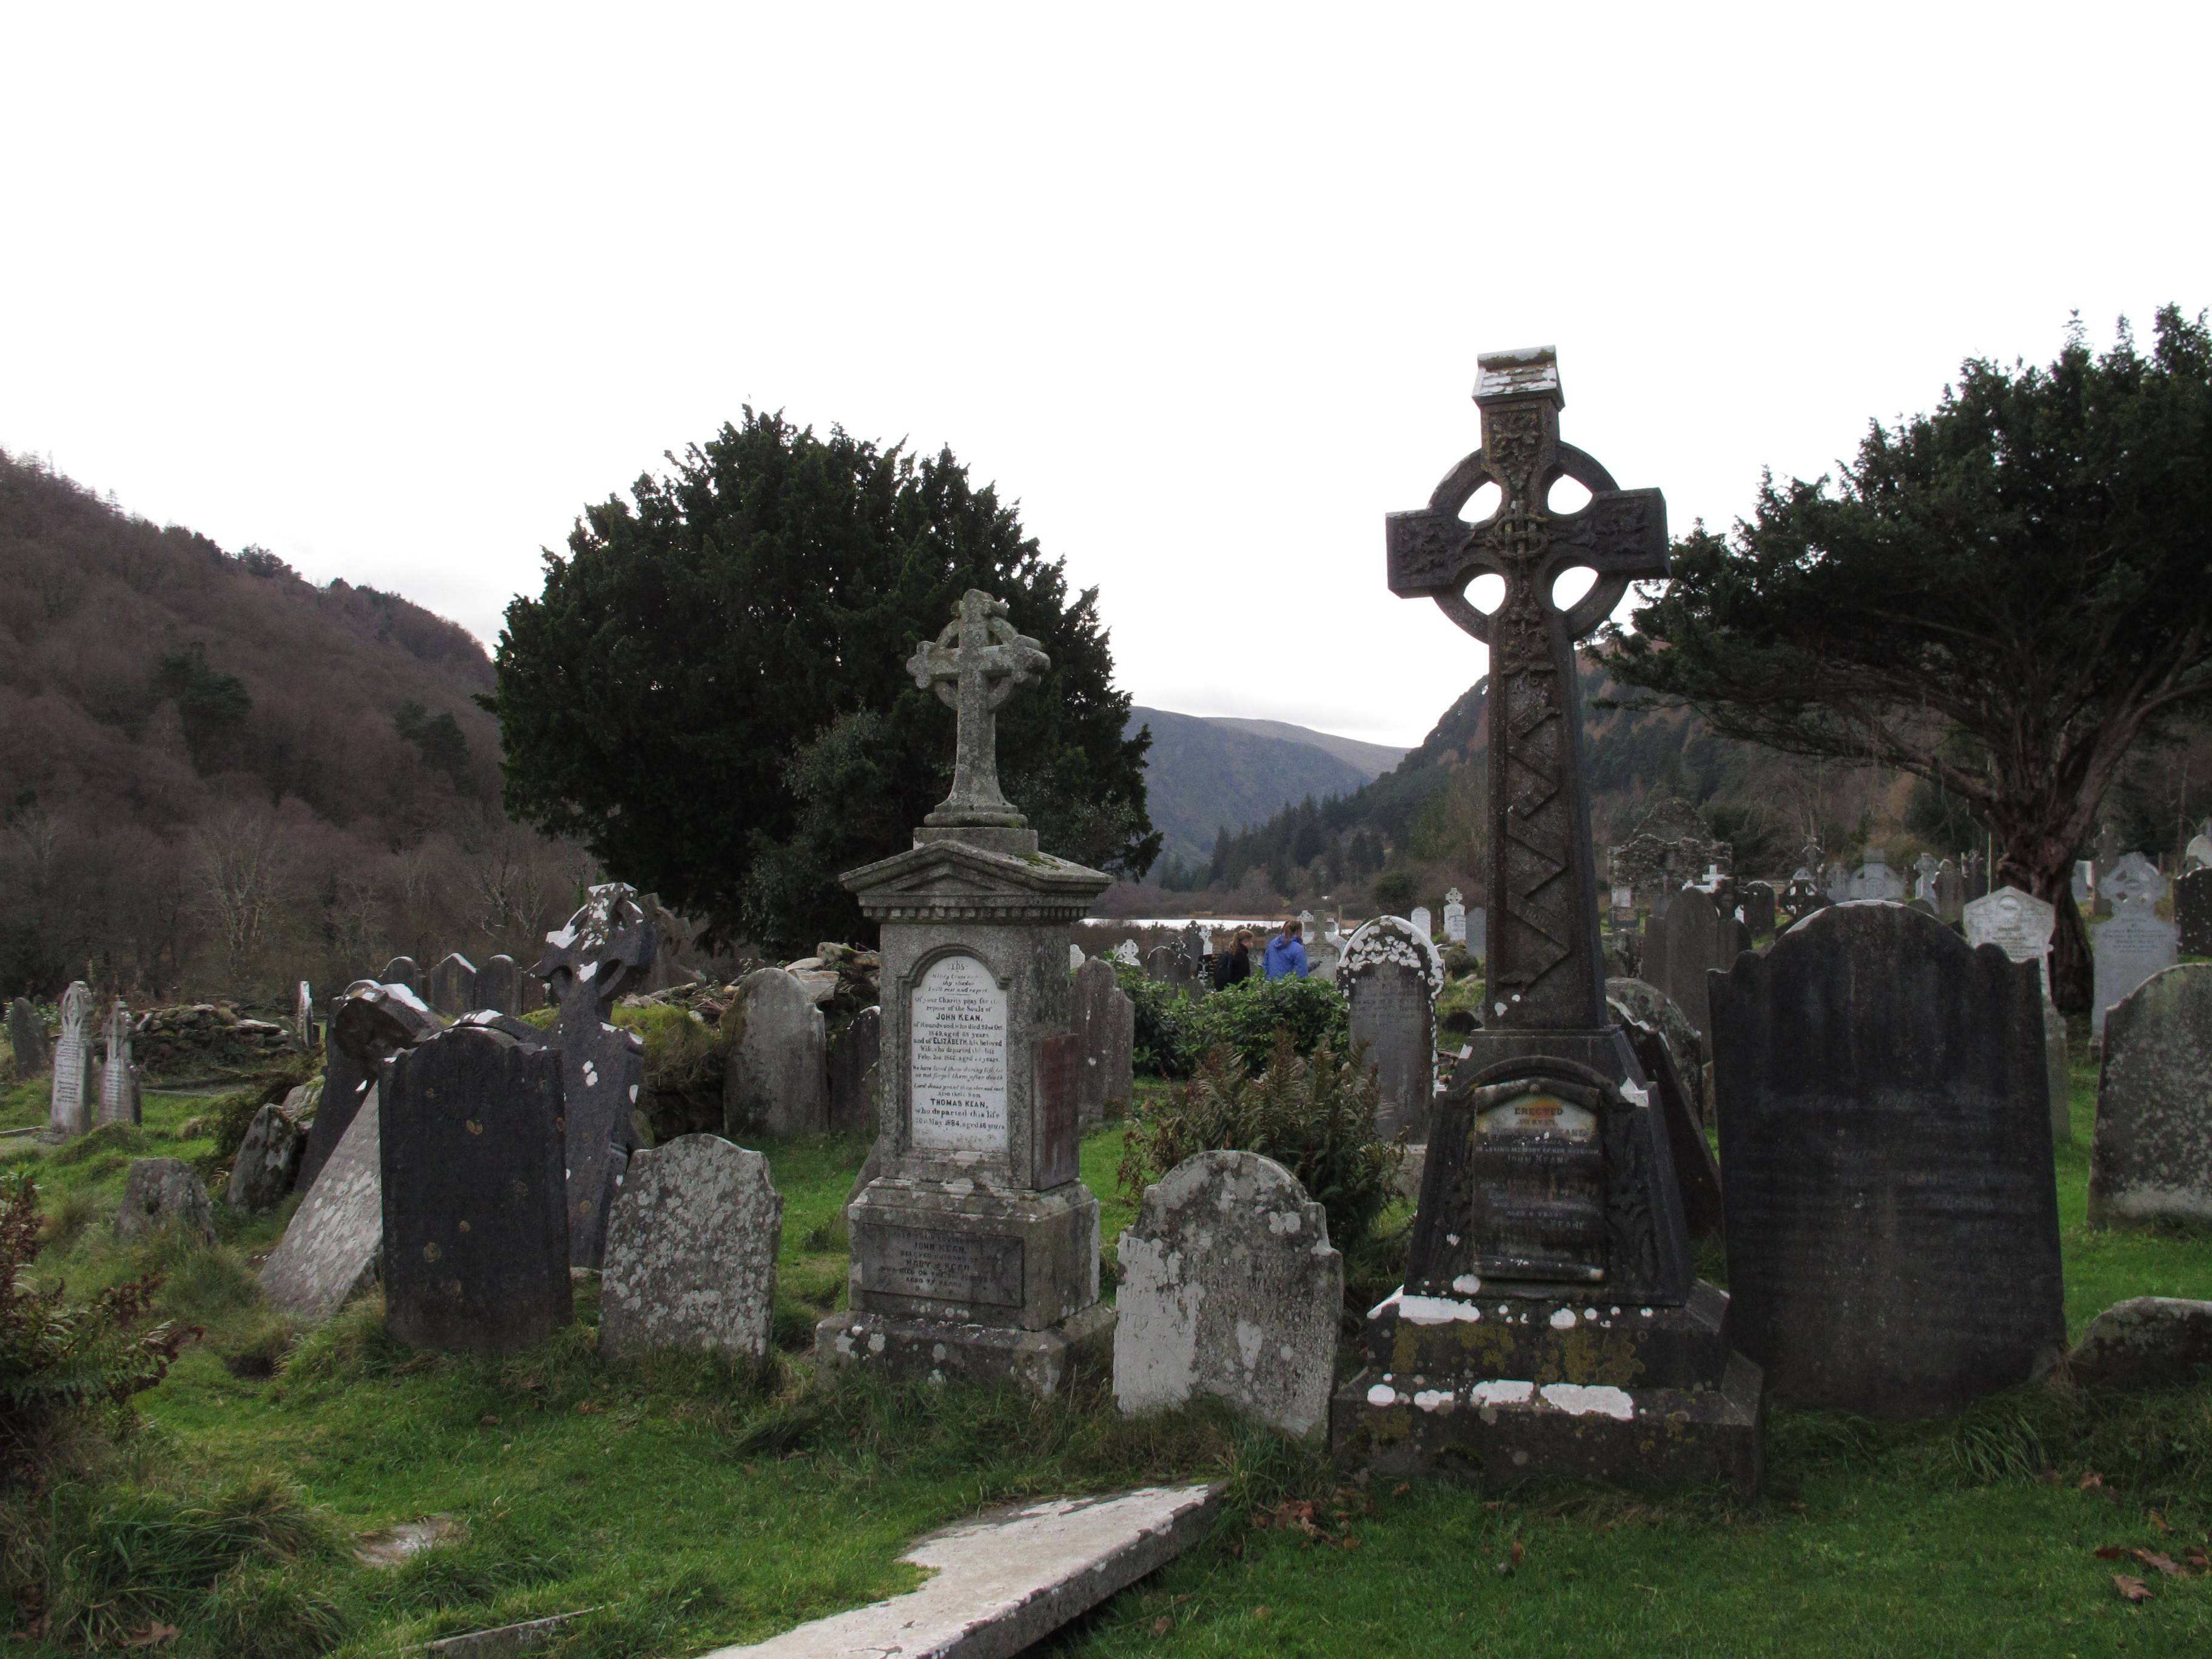 Founded by St. Kevin, the sixth-century monastic settlement in Glendalough, County Wicklow, was one of Ireland's greatest centers of learning for 500 years. Celtic crosses and centuries-old gravestones still remain.